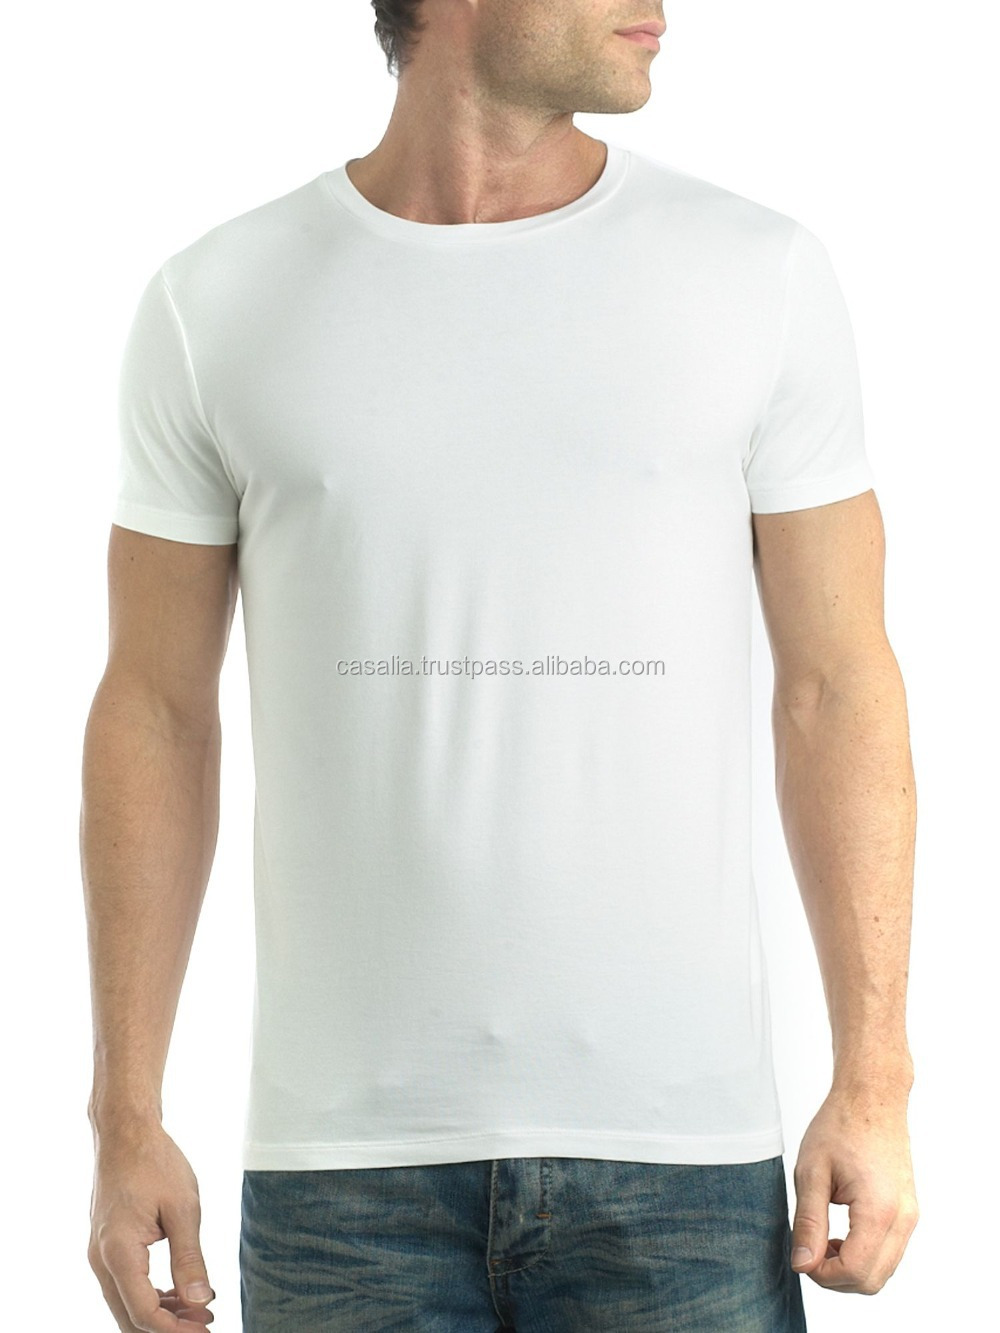 Wholesale plain white 100 cotton t shirts for men buy t Cheap plain white shirts